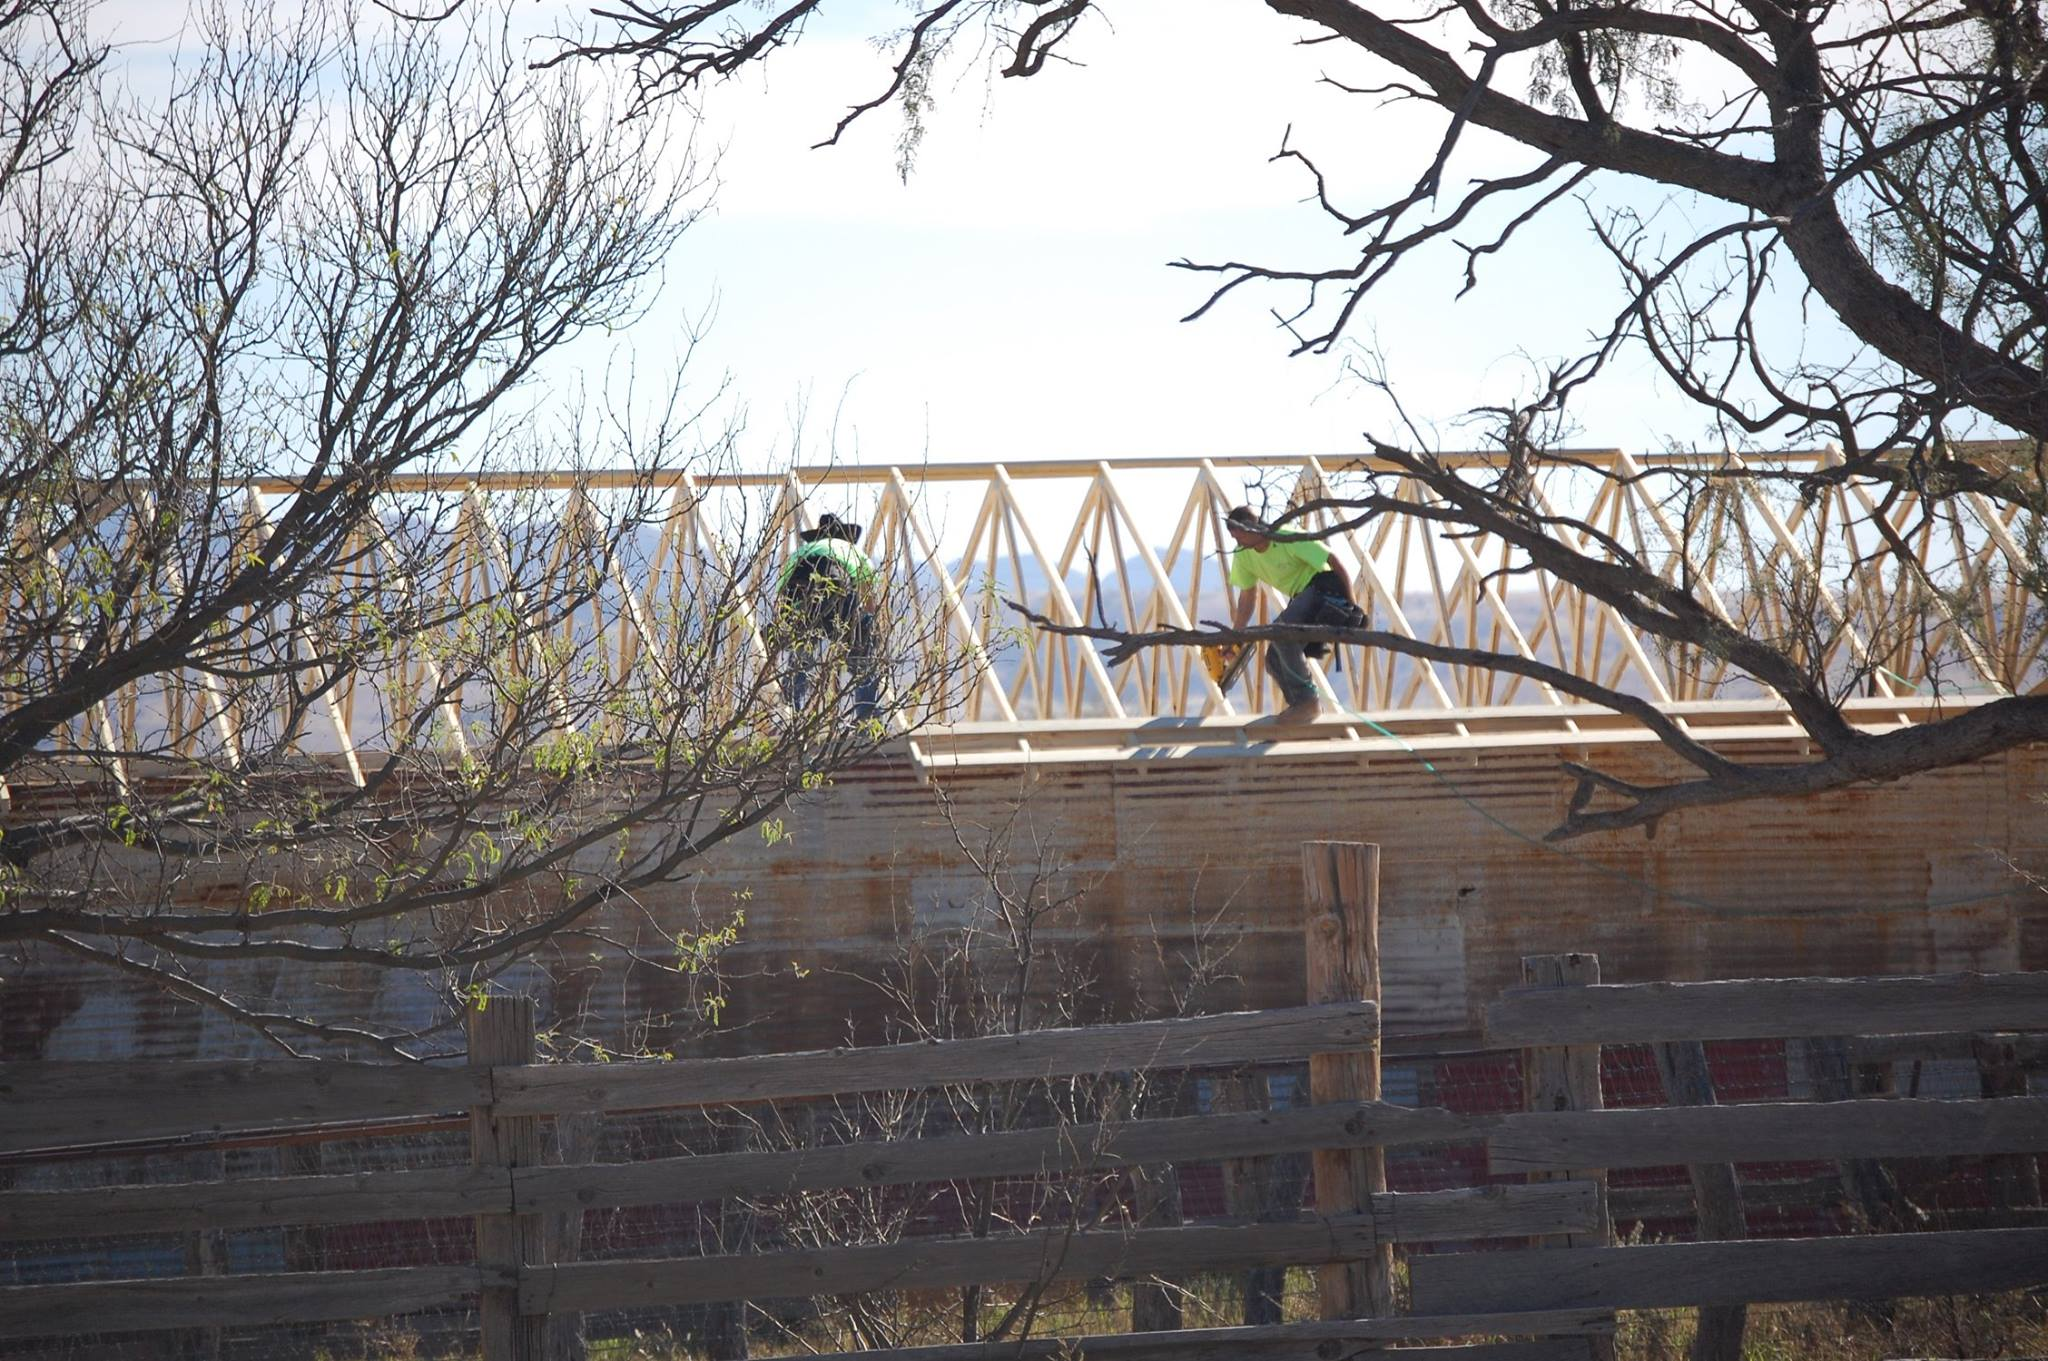 Feed barn, trusses go up, BY